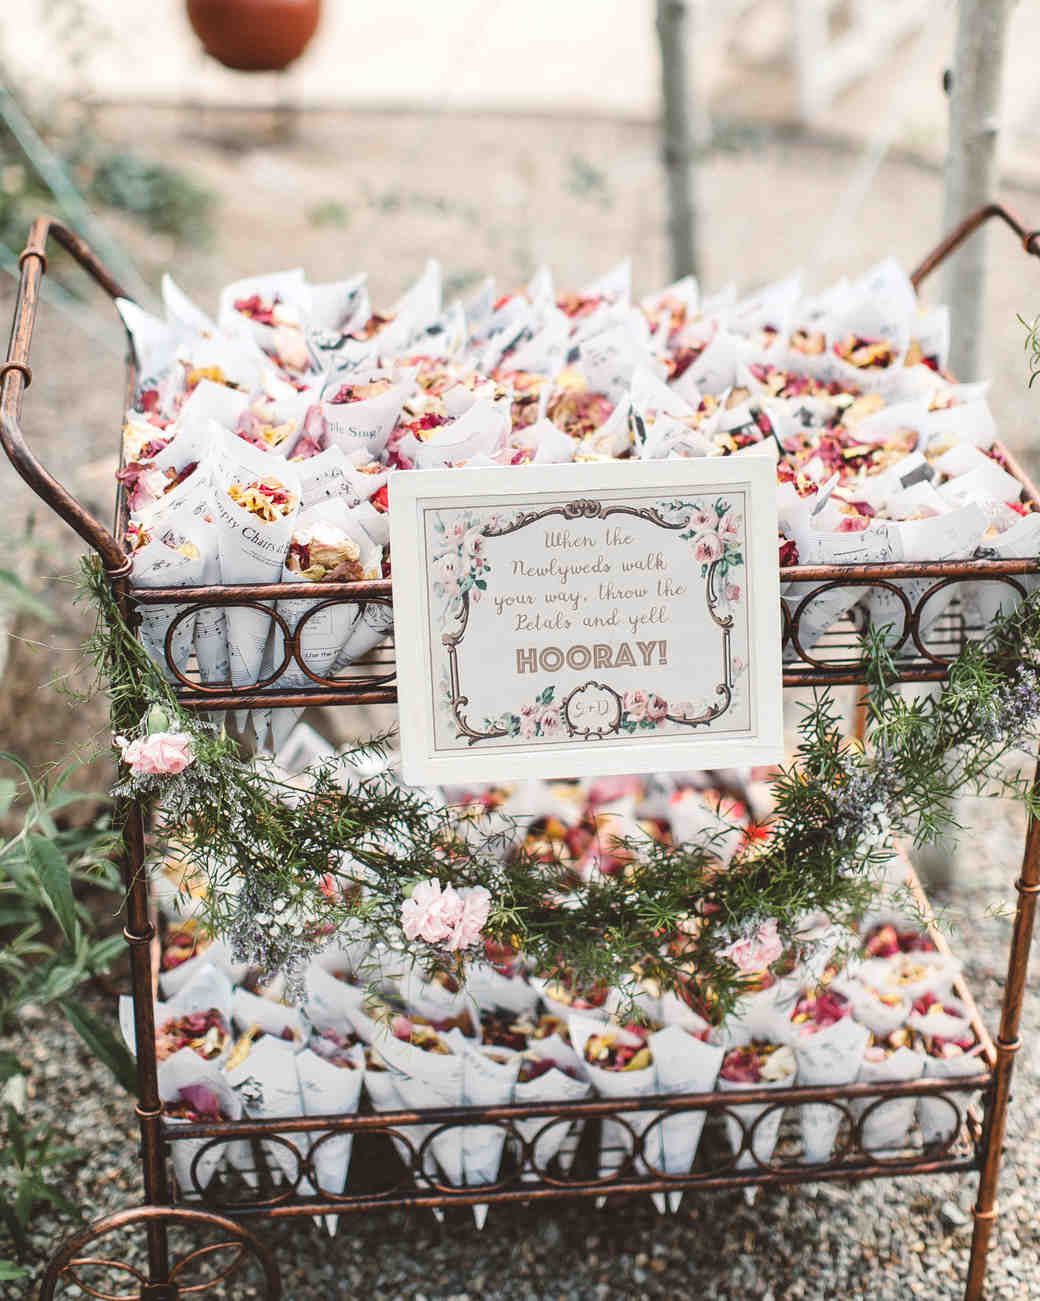 Wedding Flower Petal Bar, Flower Petals in Brass Cart